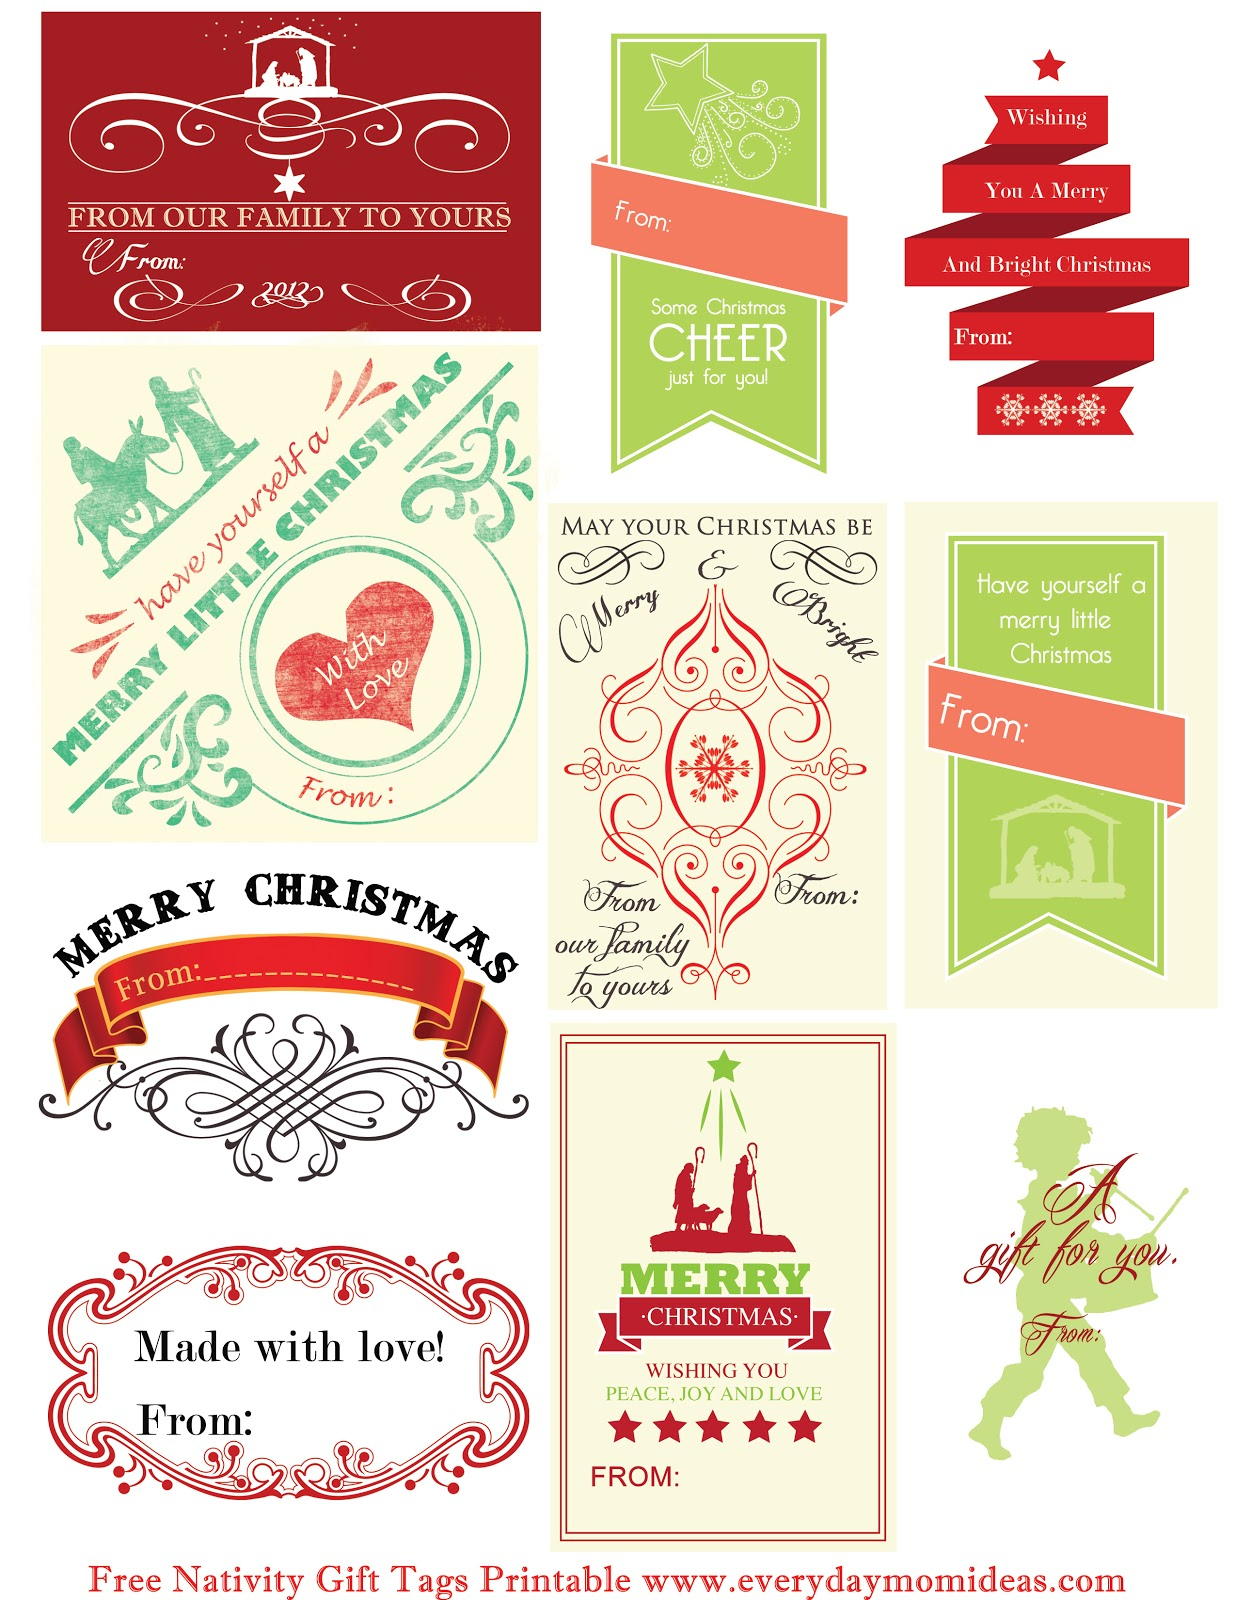 Free Nativity Gift Tags Printable - Everyday Mom Ideas - Free Printable Toe Tags